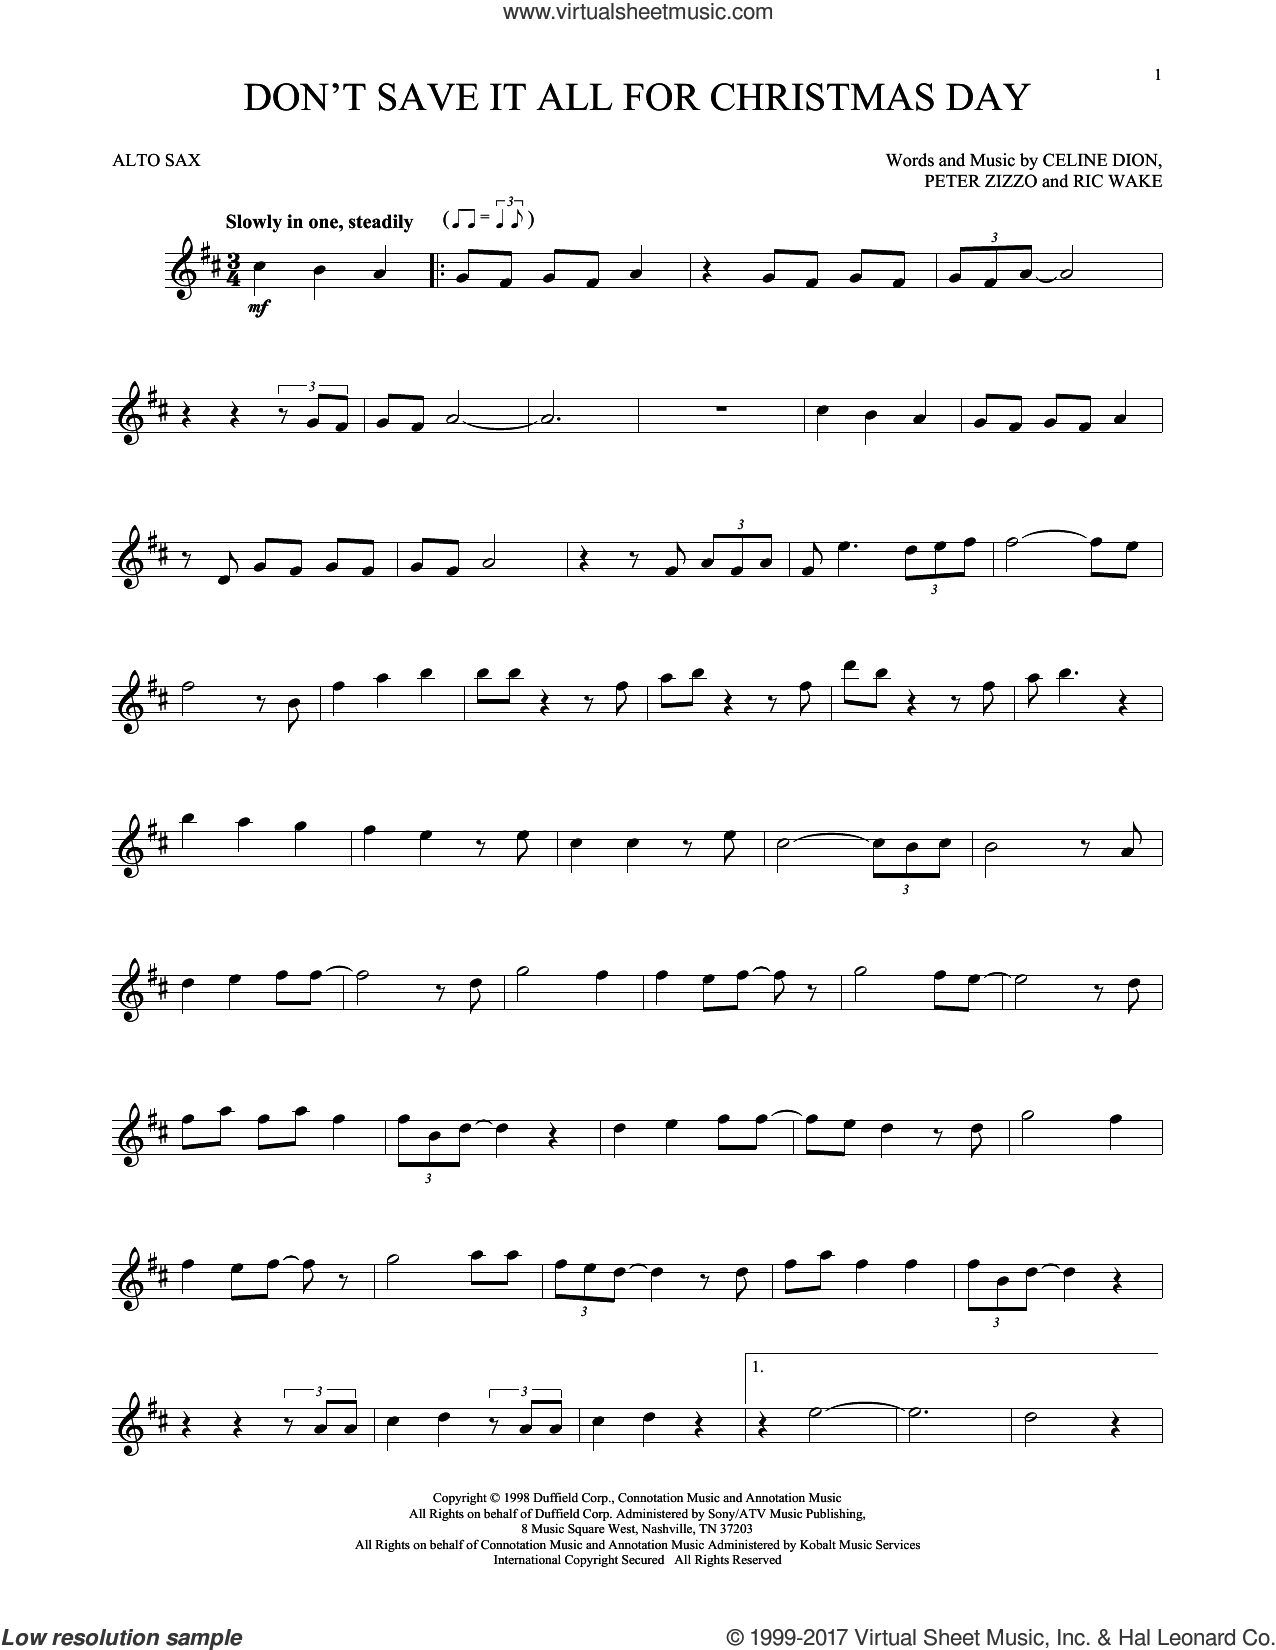 Don't Save It All For Christmas Day sheet music for alto saxophone solo by Celine Dion, Avalon, Peter Zizzo and Ric Wake, intermediate skill level